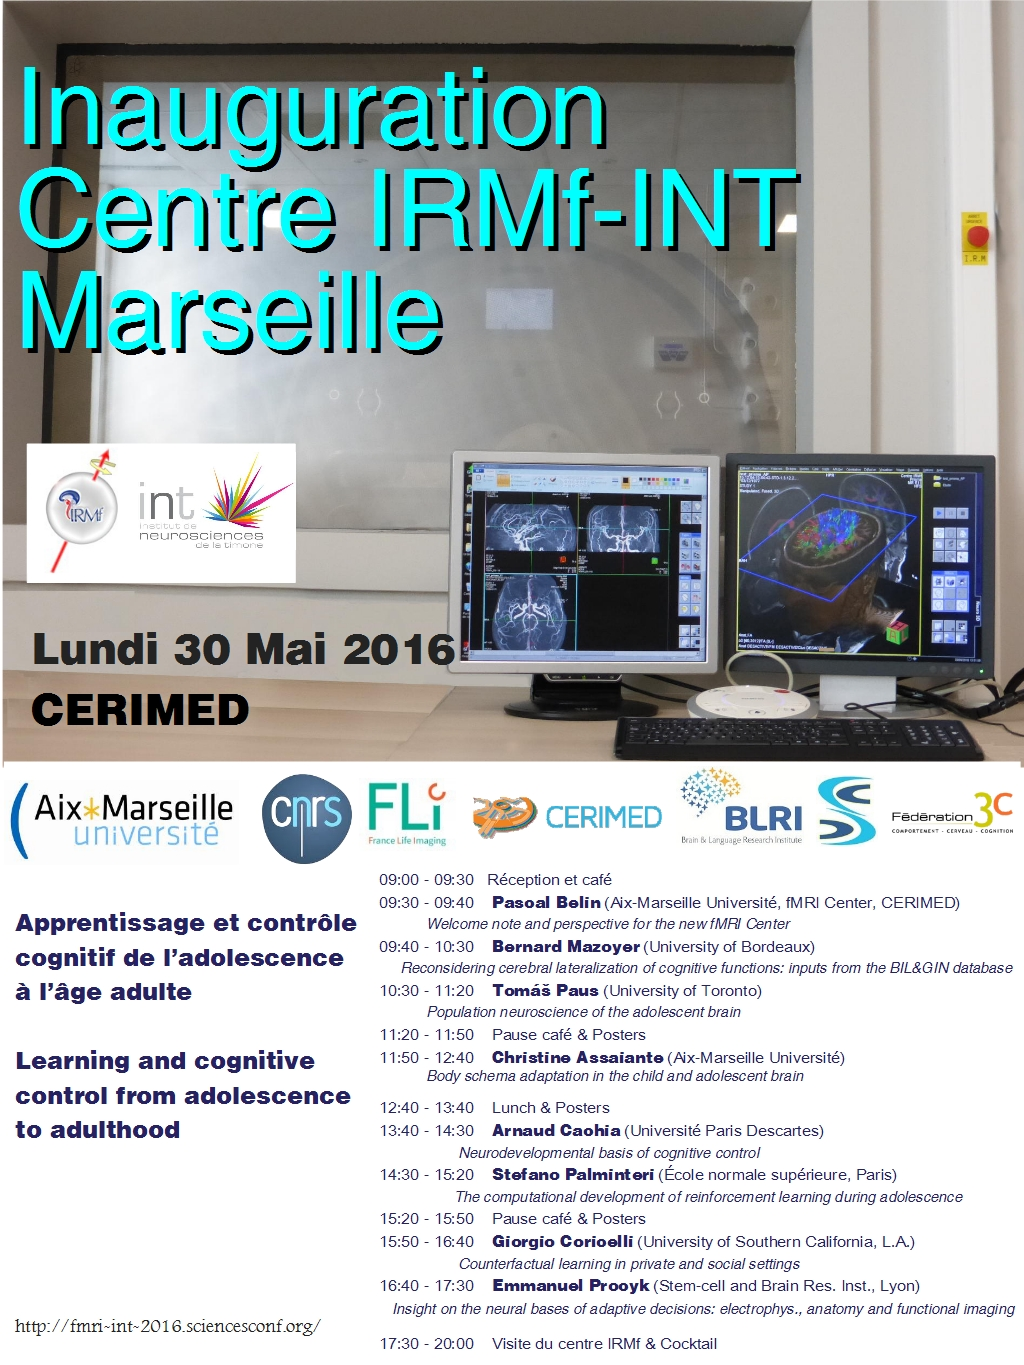 Inauguration Centre IRMf Marseille 2016 - JPEG - 795 ko